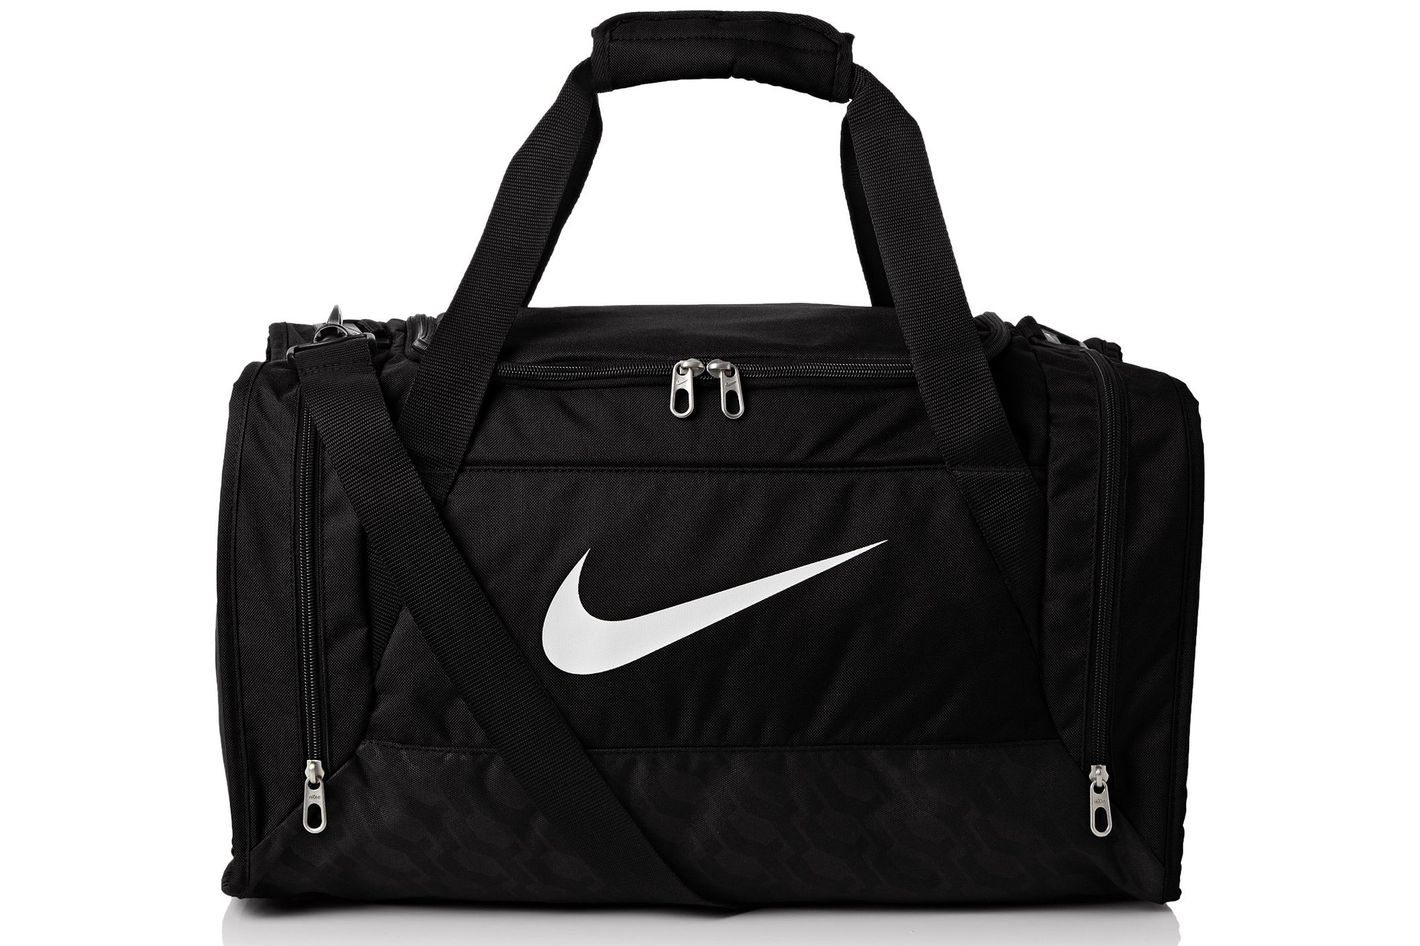 37ed99498976 Best Gym Bag for Every Kind of Exerciser